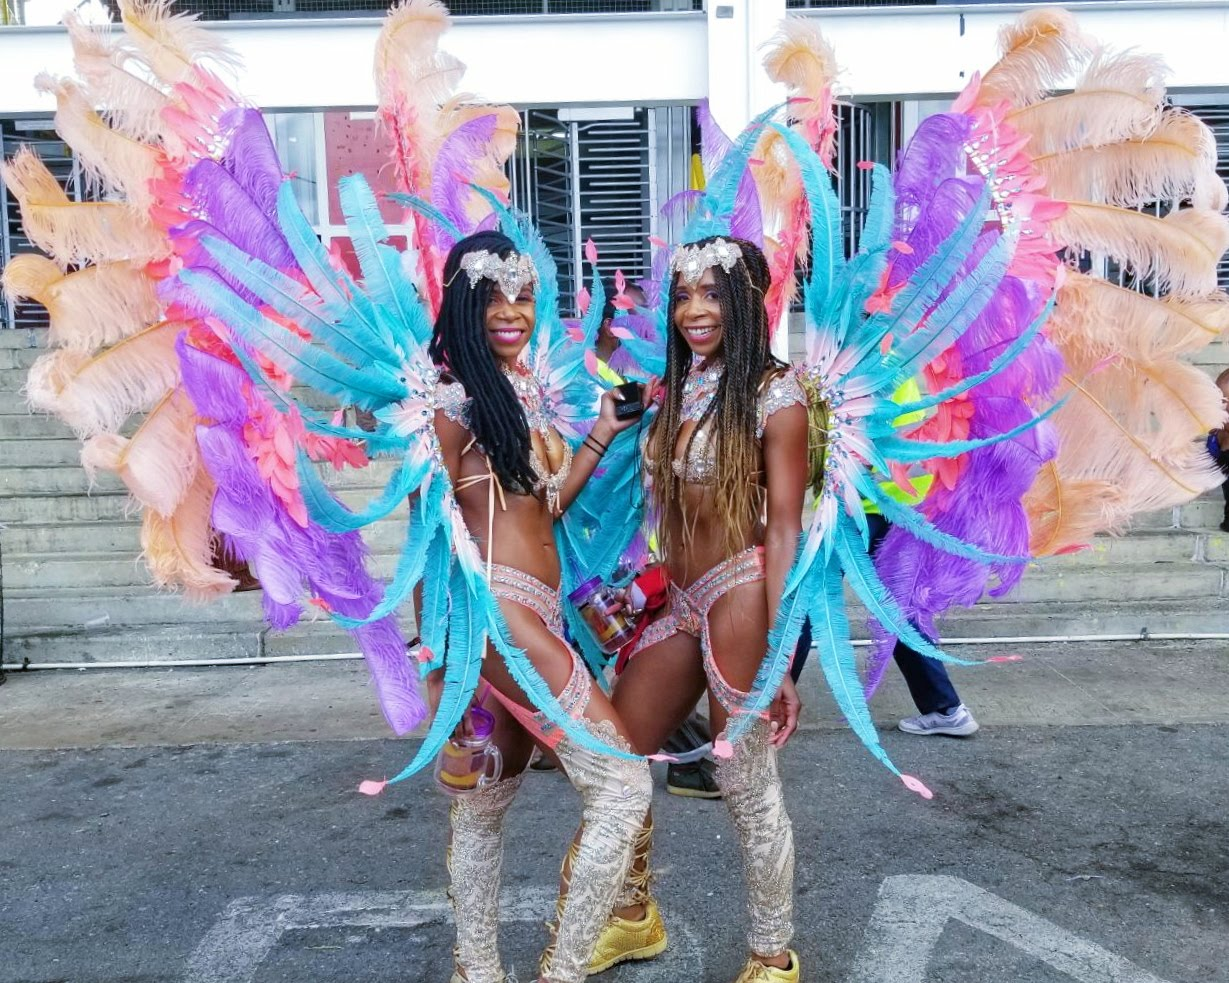 Carnival costumes for the New Year do it yourself. Part 1